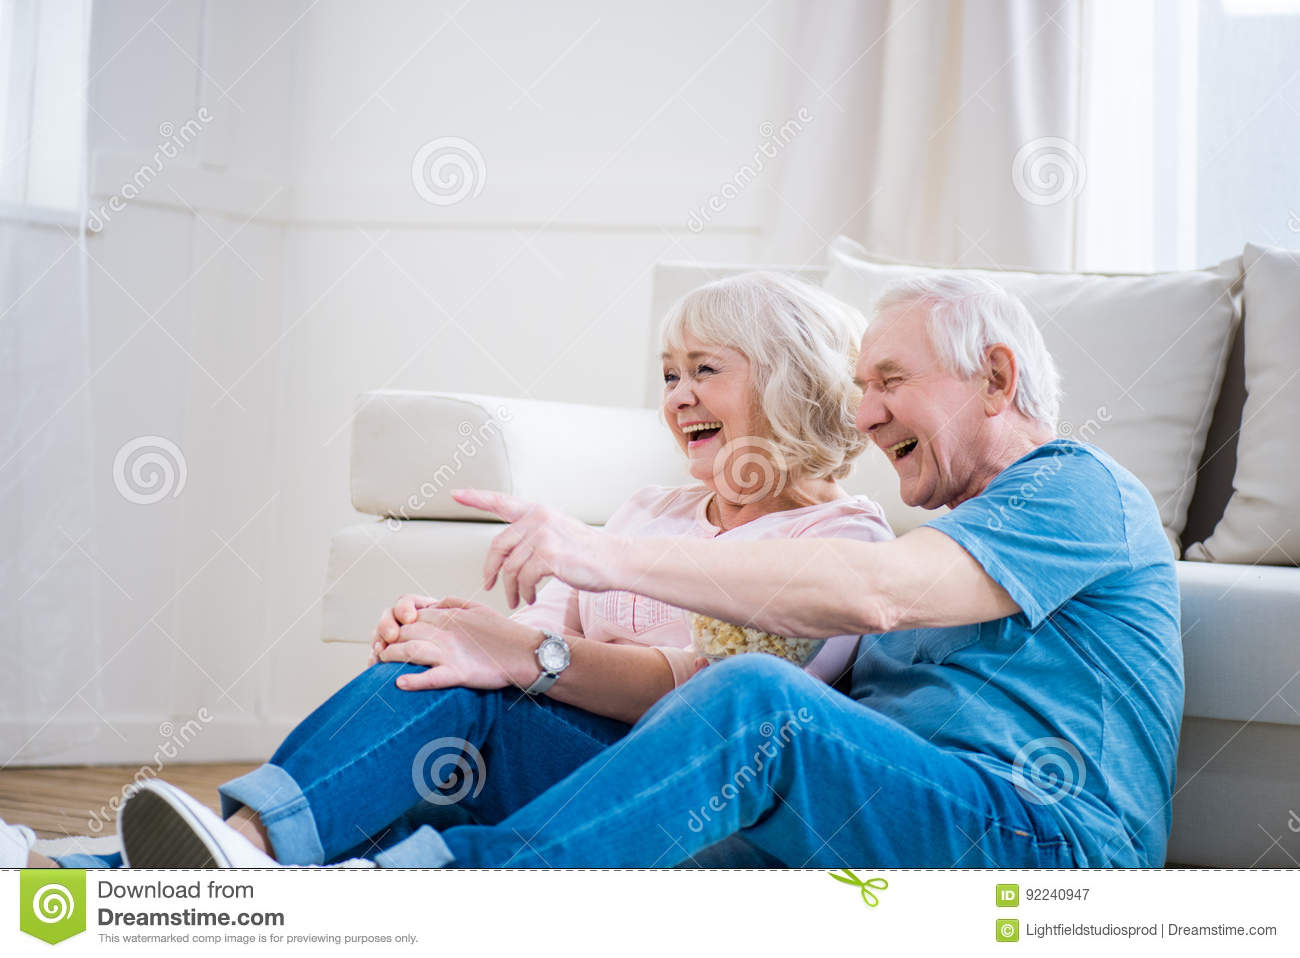 Senior couple laughing and sitting on floor, man pointing